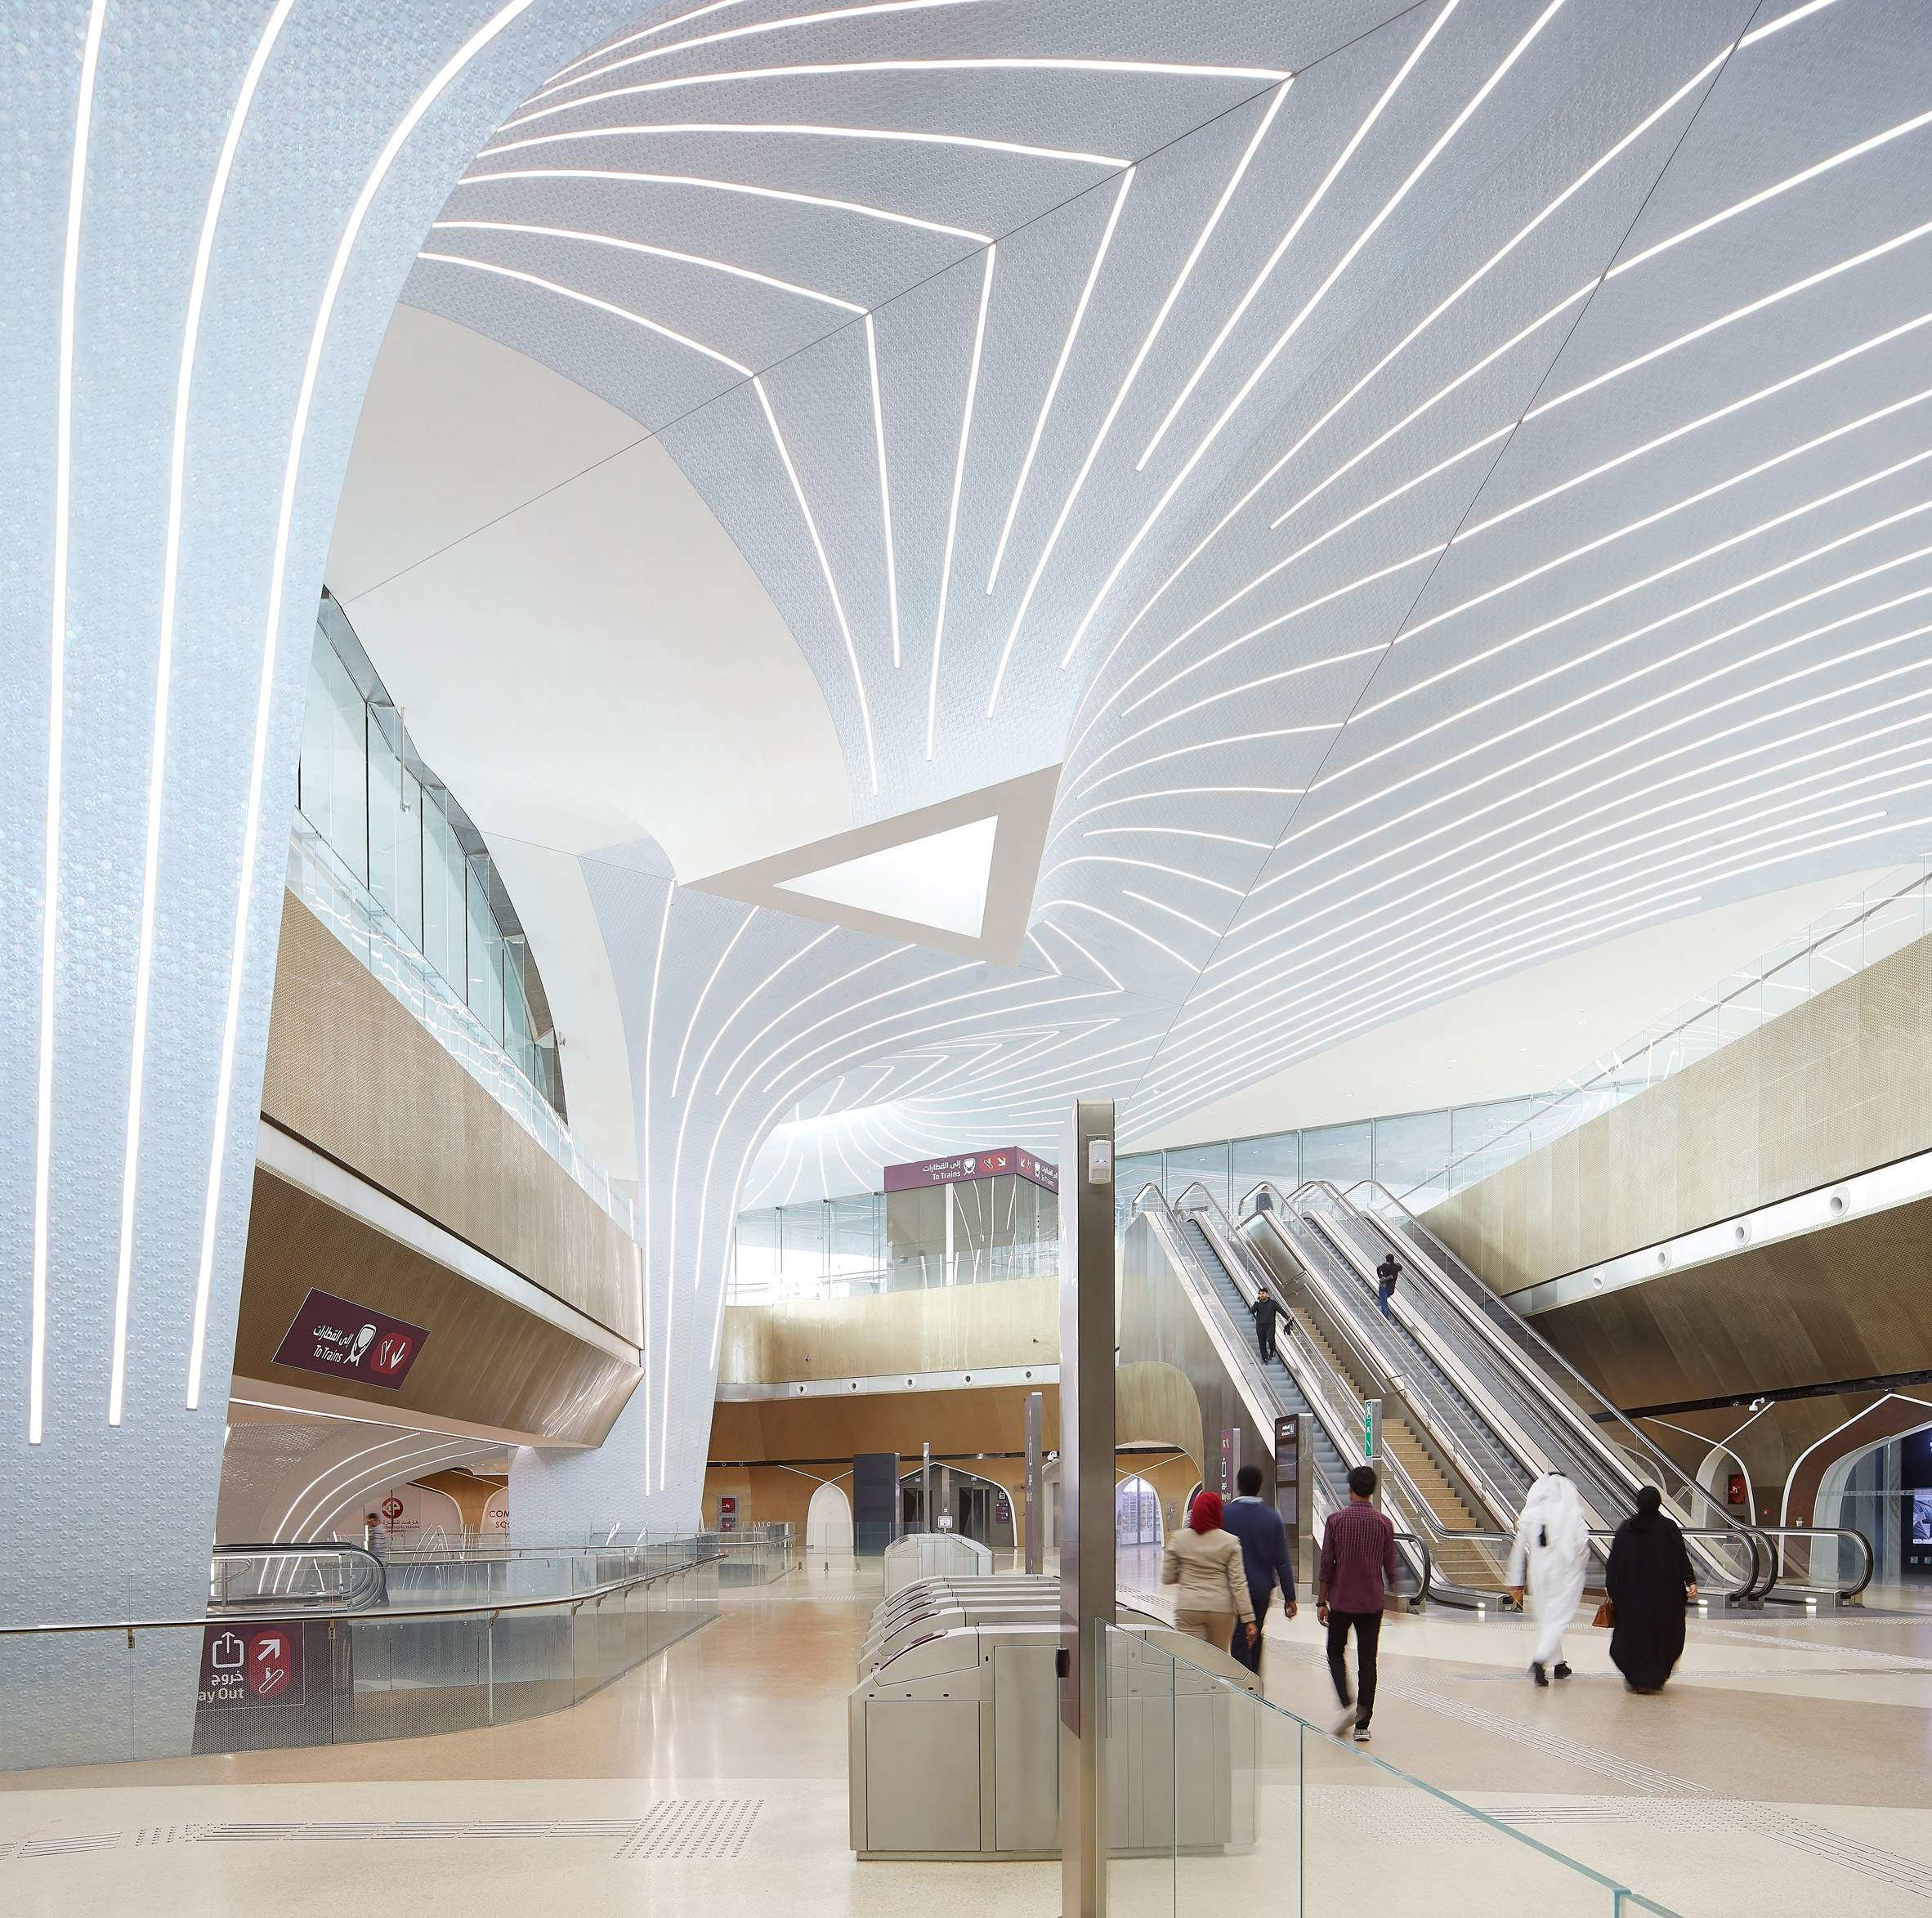 Msheireb station on the Doha Metro by UNStudio